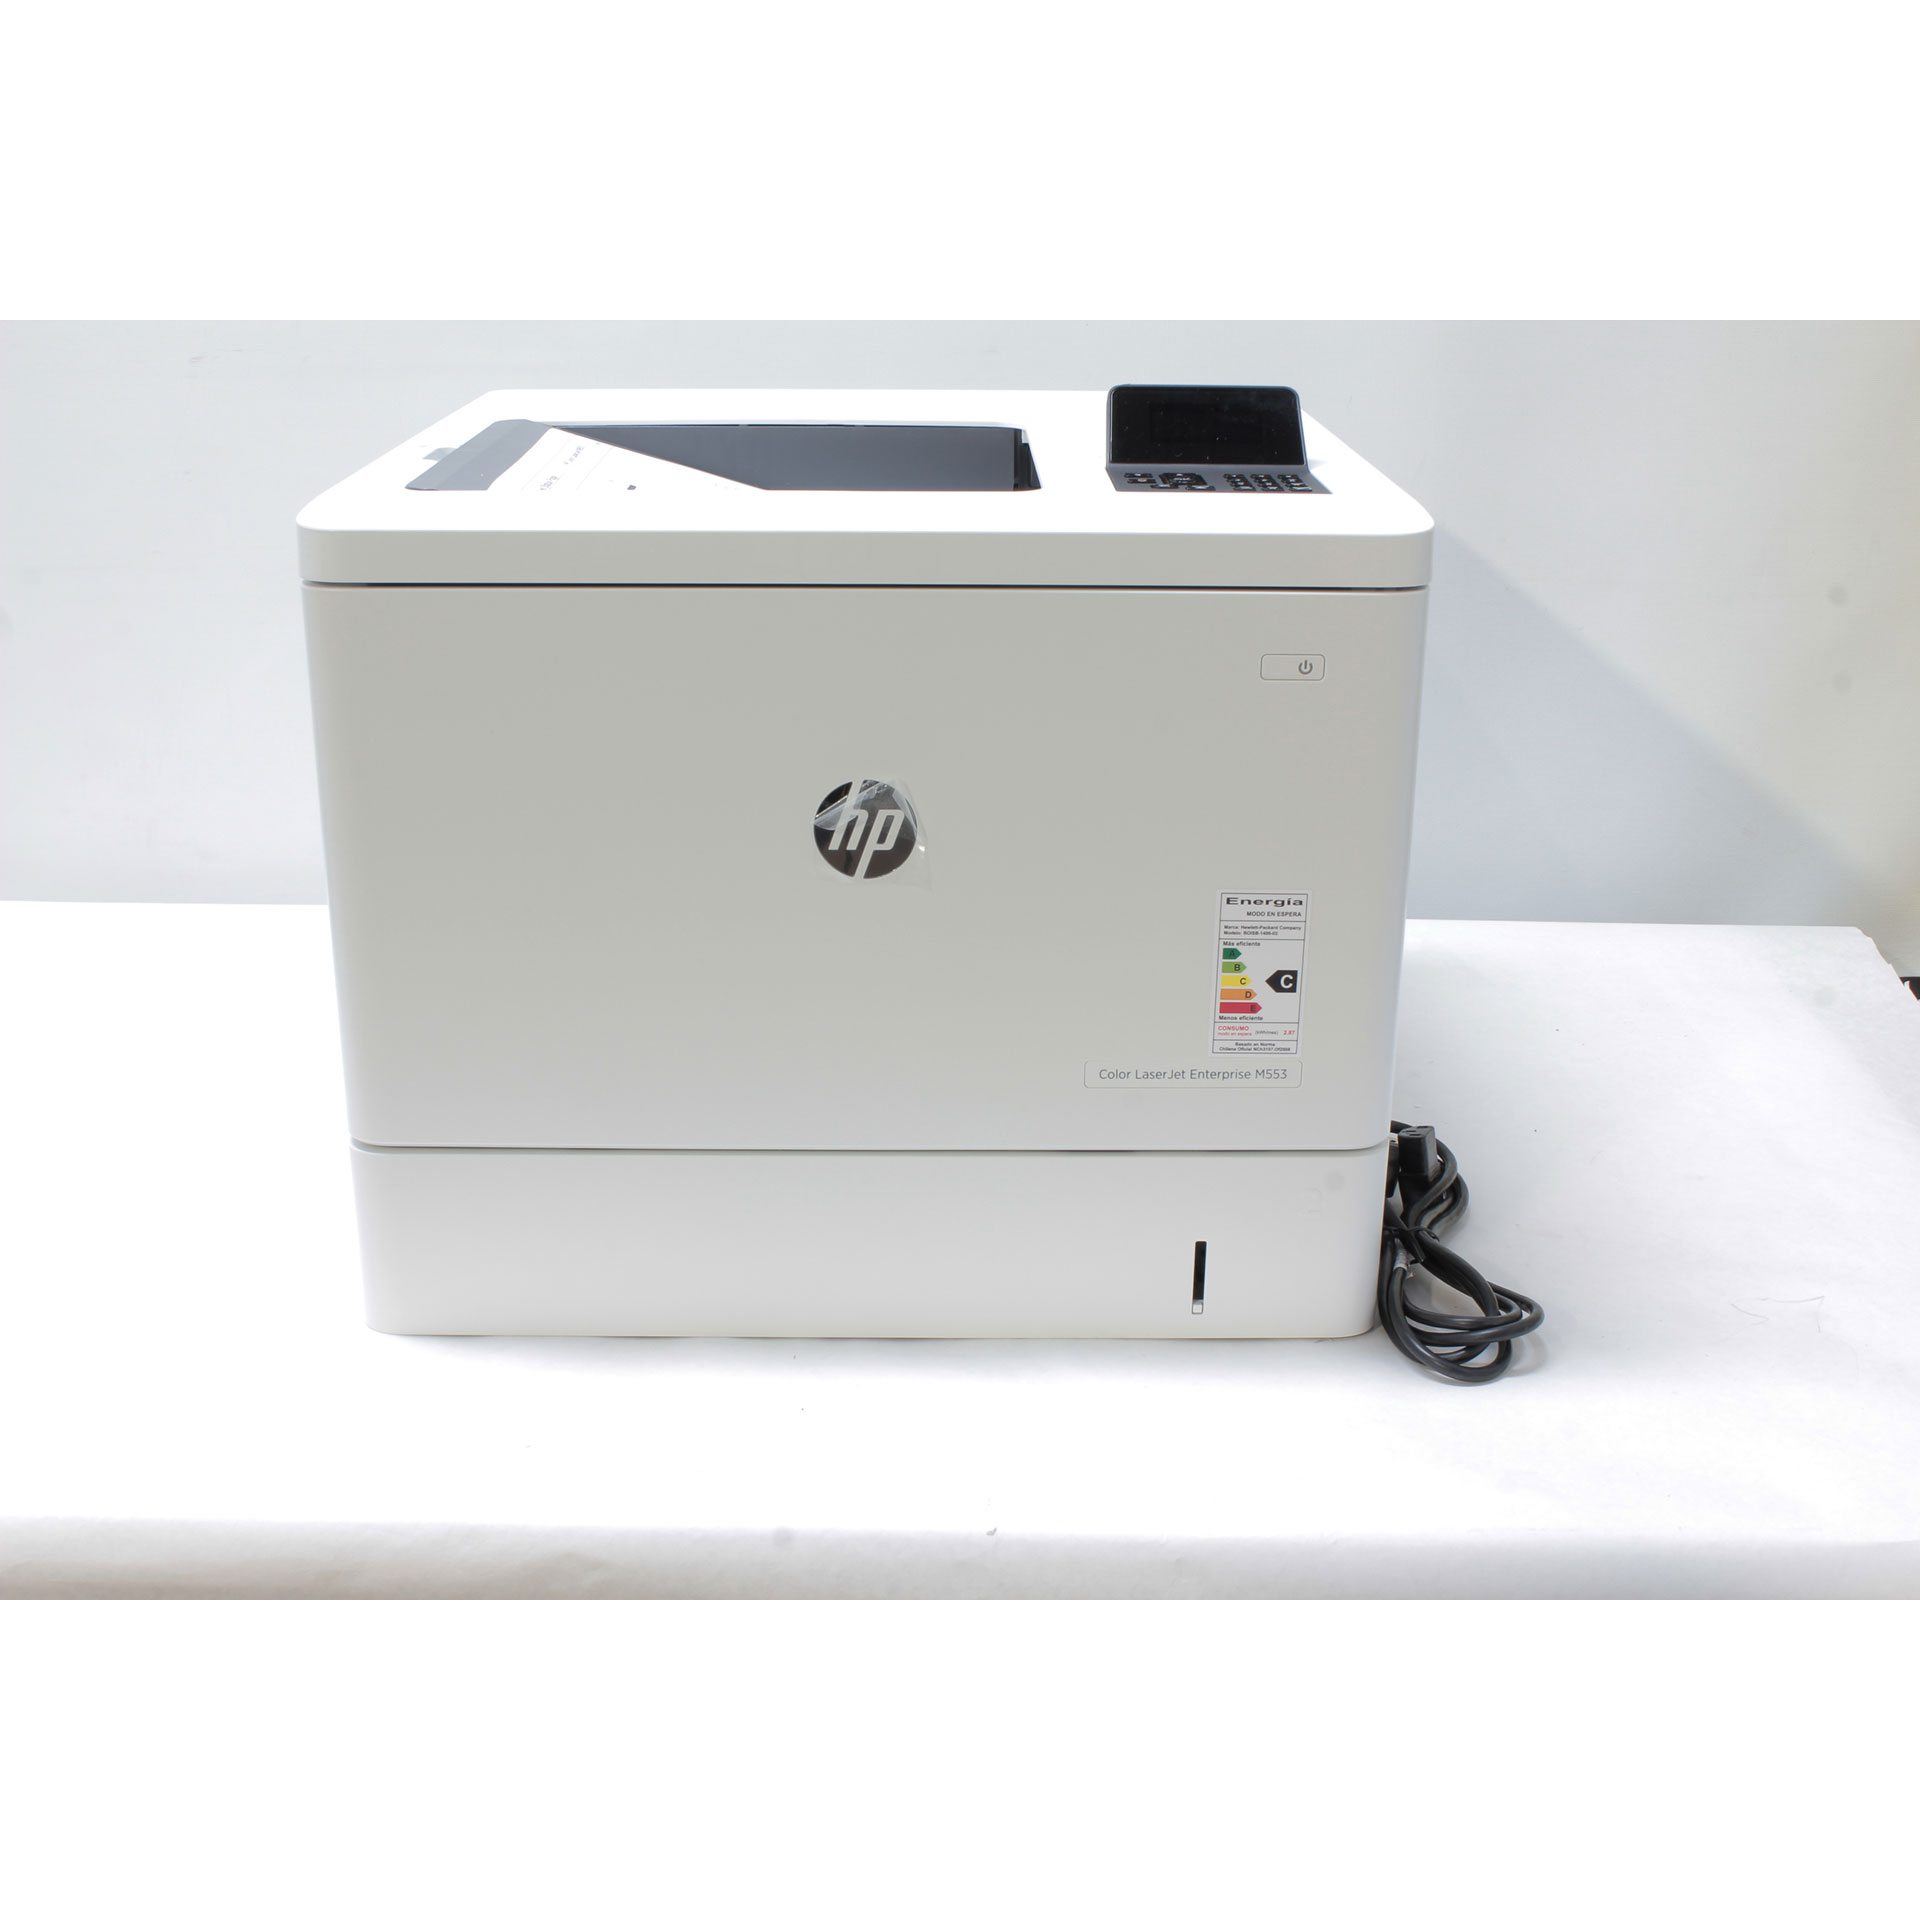 HP Color LaserJet ENT M553DN 220V Secure Printer B5L25A 0 pages